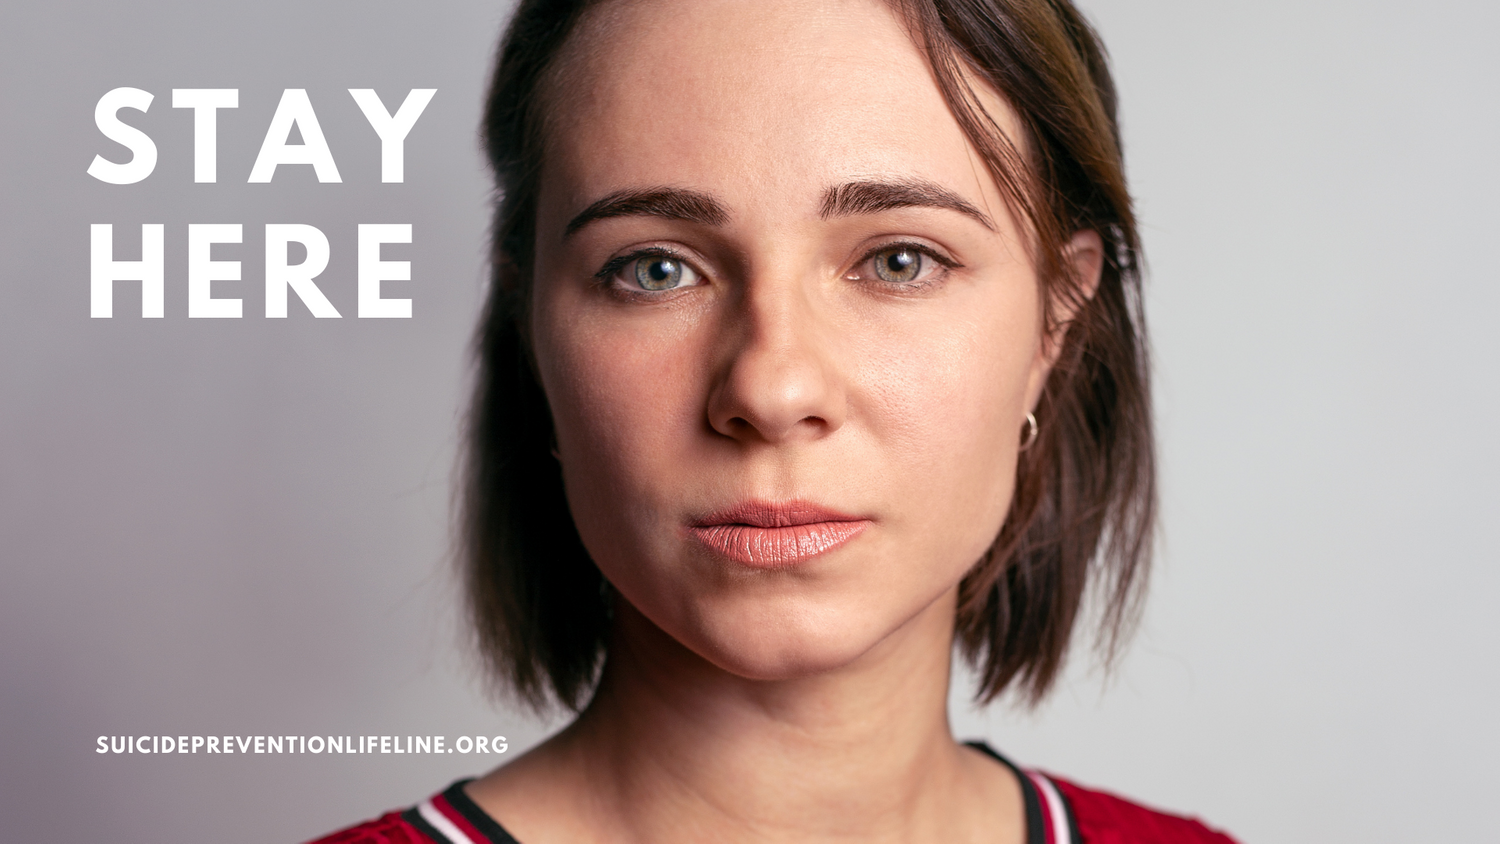 female ad billboard for suicide prevention USA